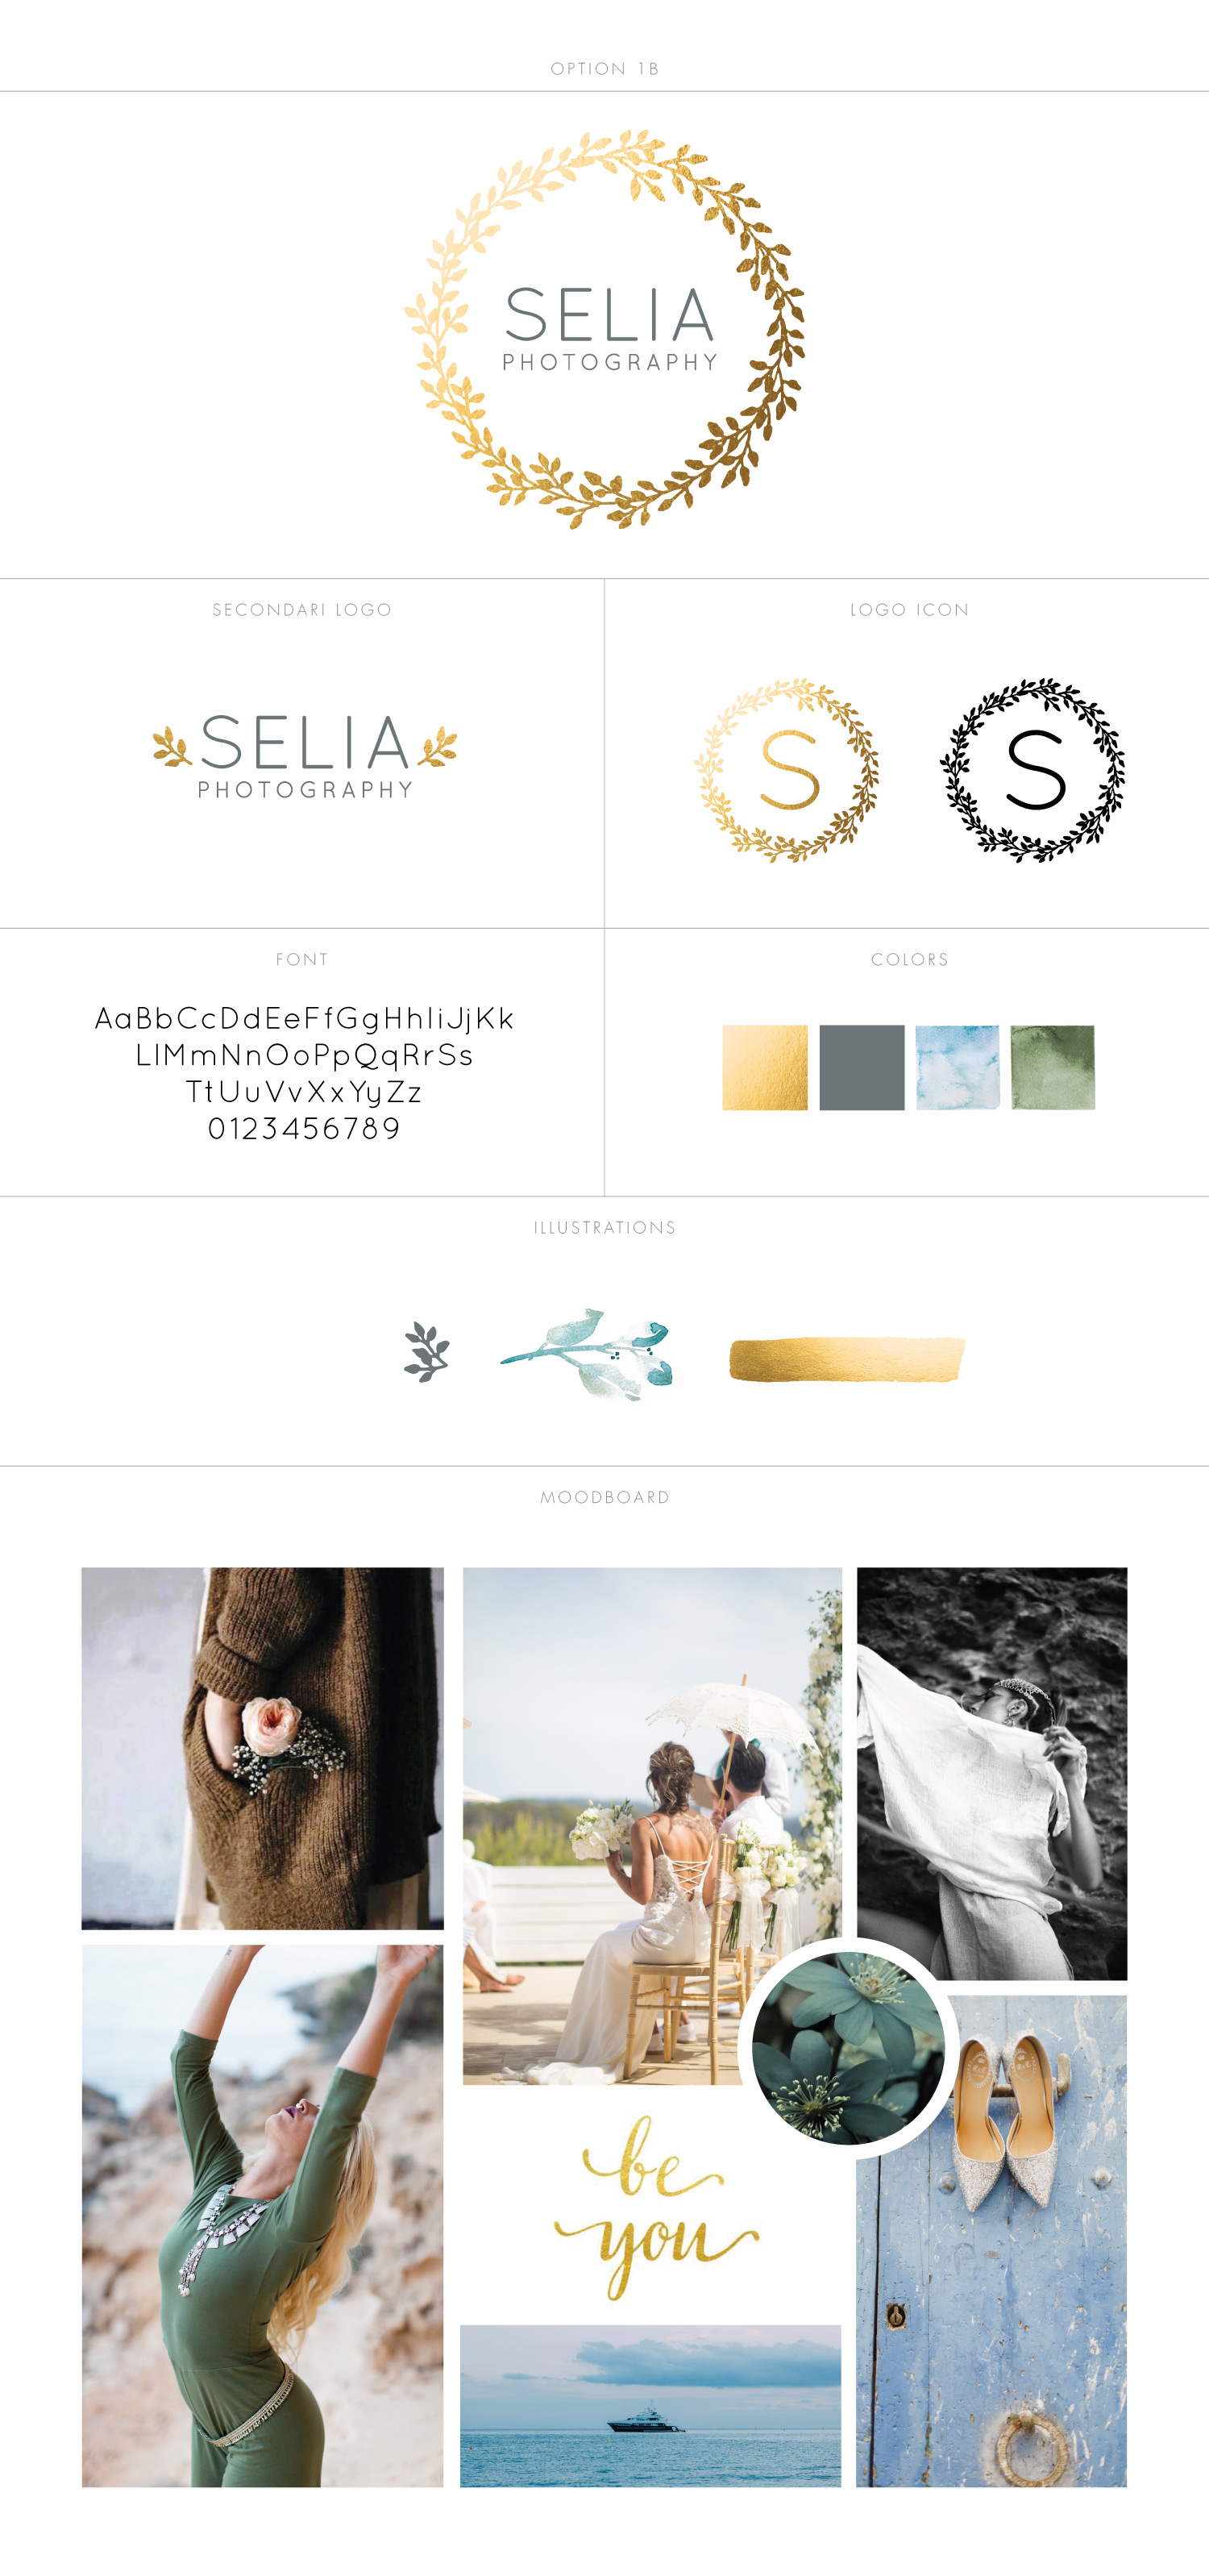 logo design and branding moodboard for Selia Photography